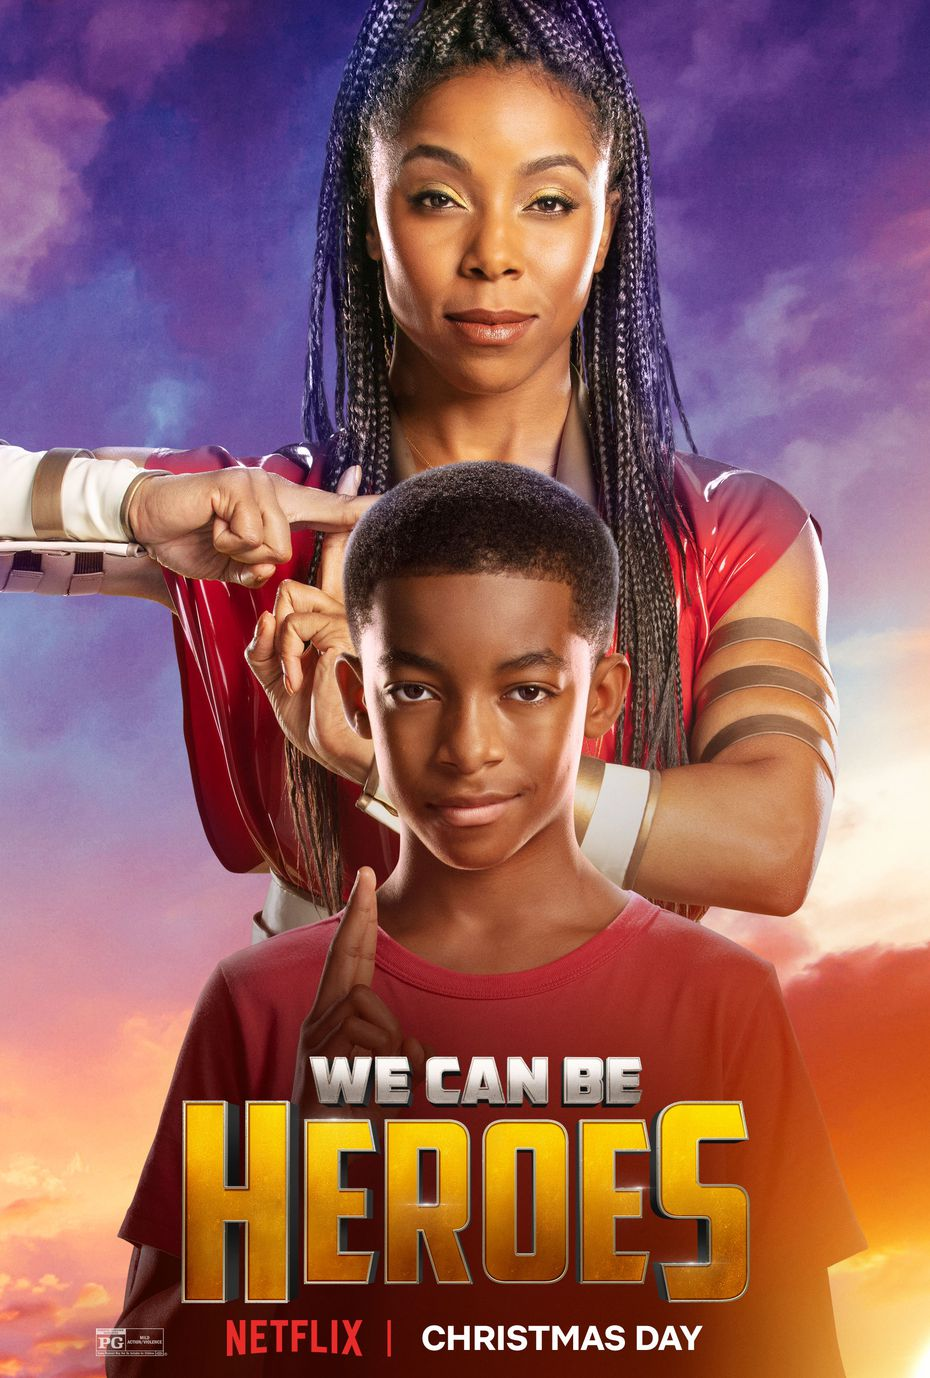 """Brittany Perry-Russell and Isaiah Russell-Bailey star in """"We Can Be Heroes,"""" which has been among Netflix's most-watched films since its release on Christmas Day."""